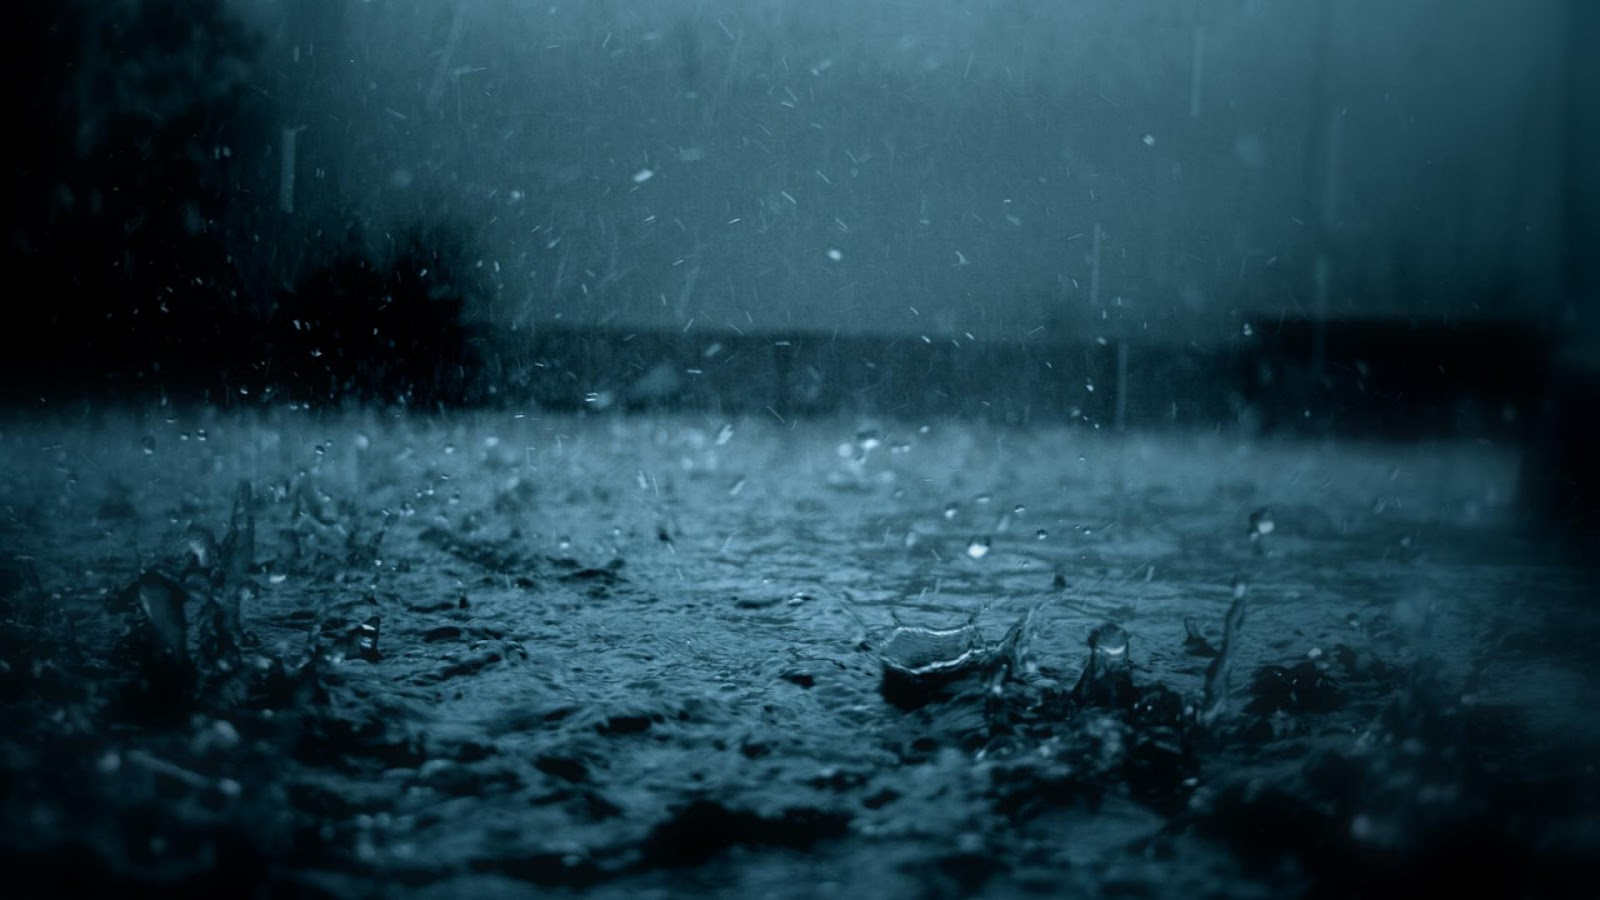 rainy night wallpapers background - photo #19